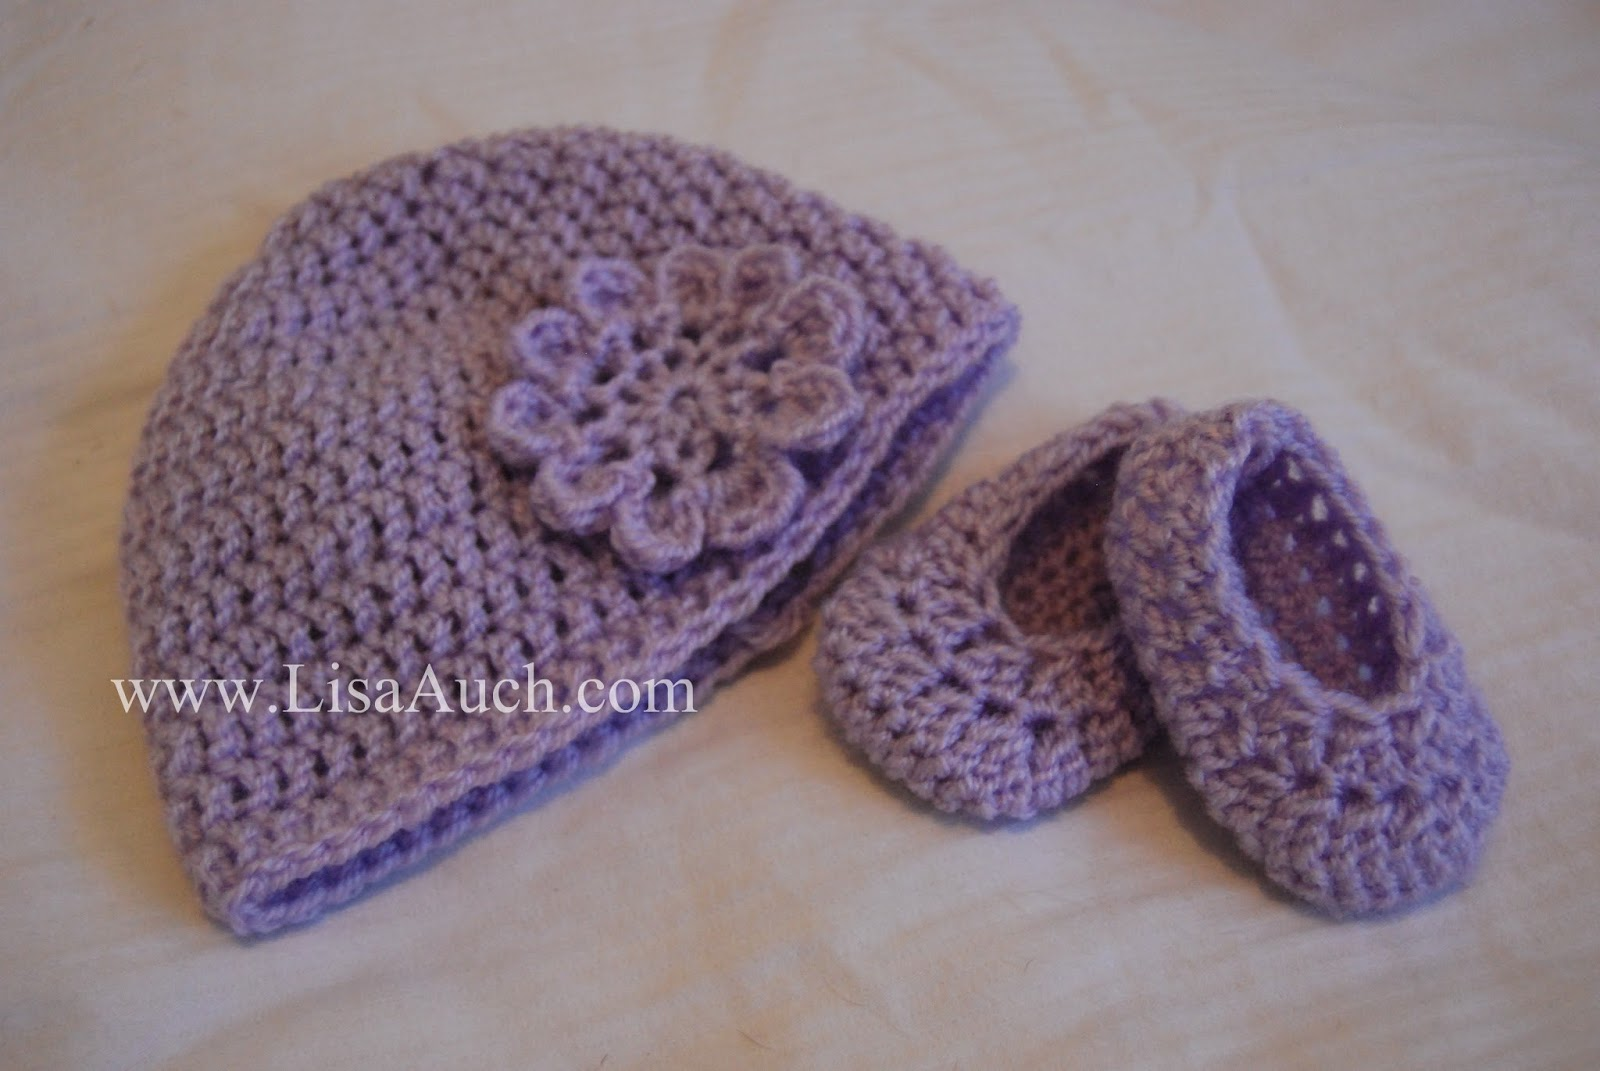 Free Crochet Patterns For Baby Toddler Hats : Free Crochet Baby Booties and Hat Pattern